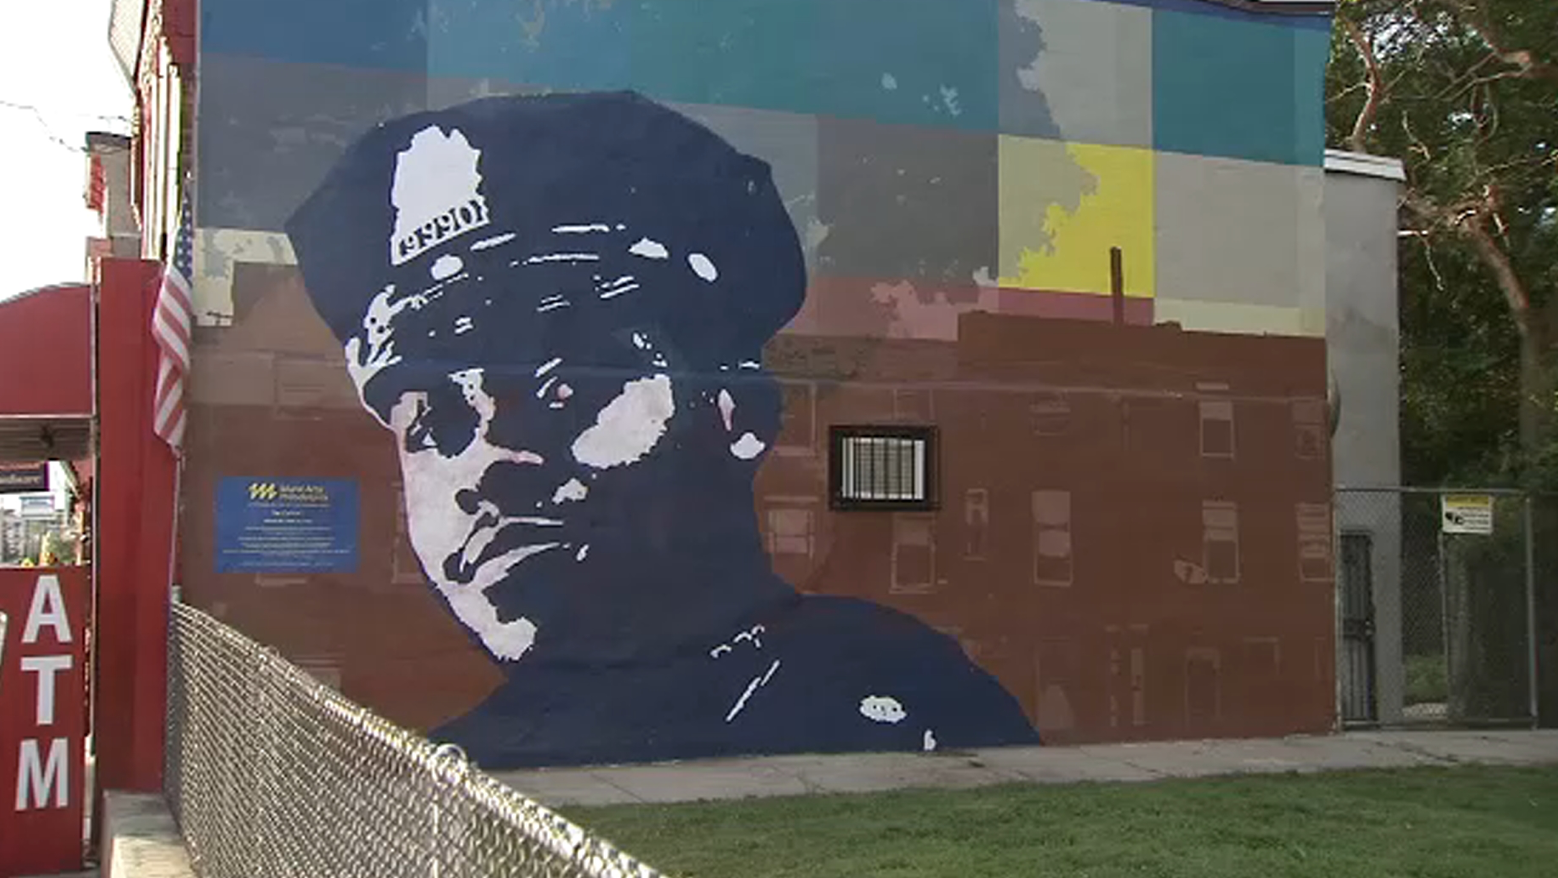 Coward defaces memorial of murdered officer - $10k reward offered to find them